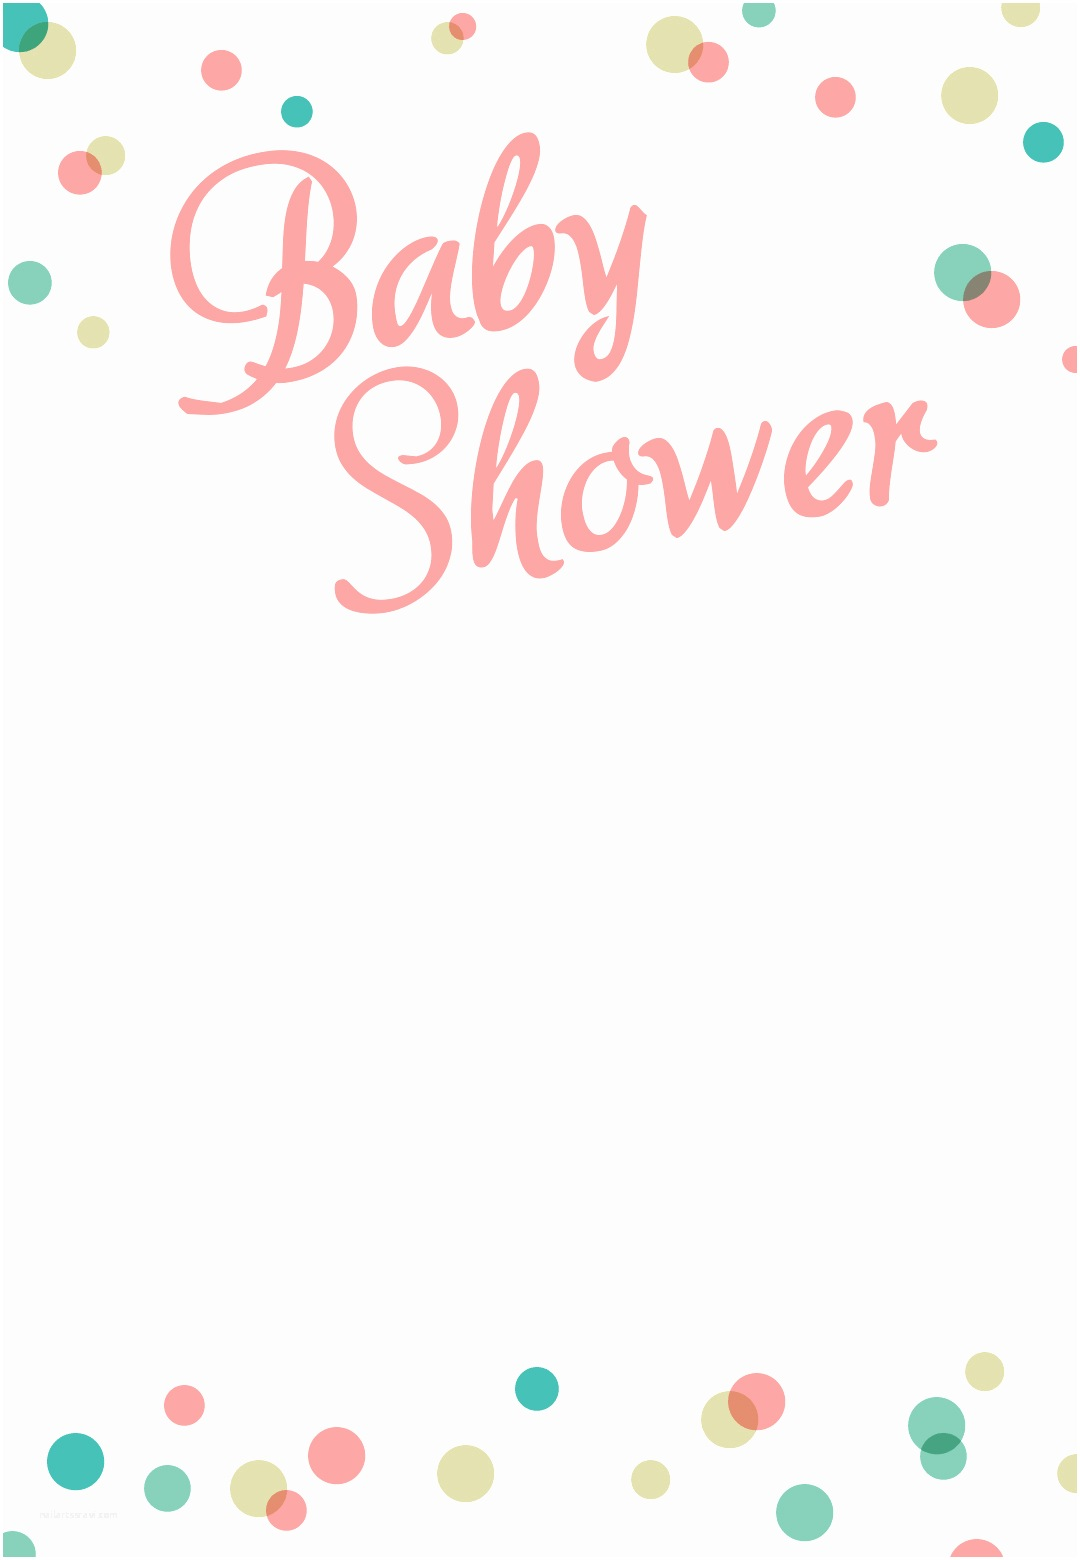 Baby Shower Invitation Templates Dancing Dots Borders Free Printable Baby Shower